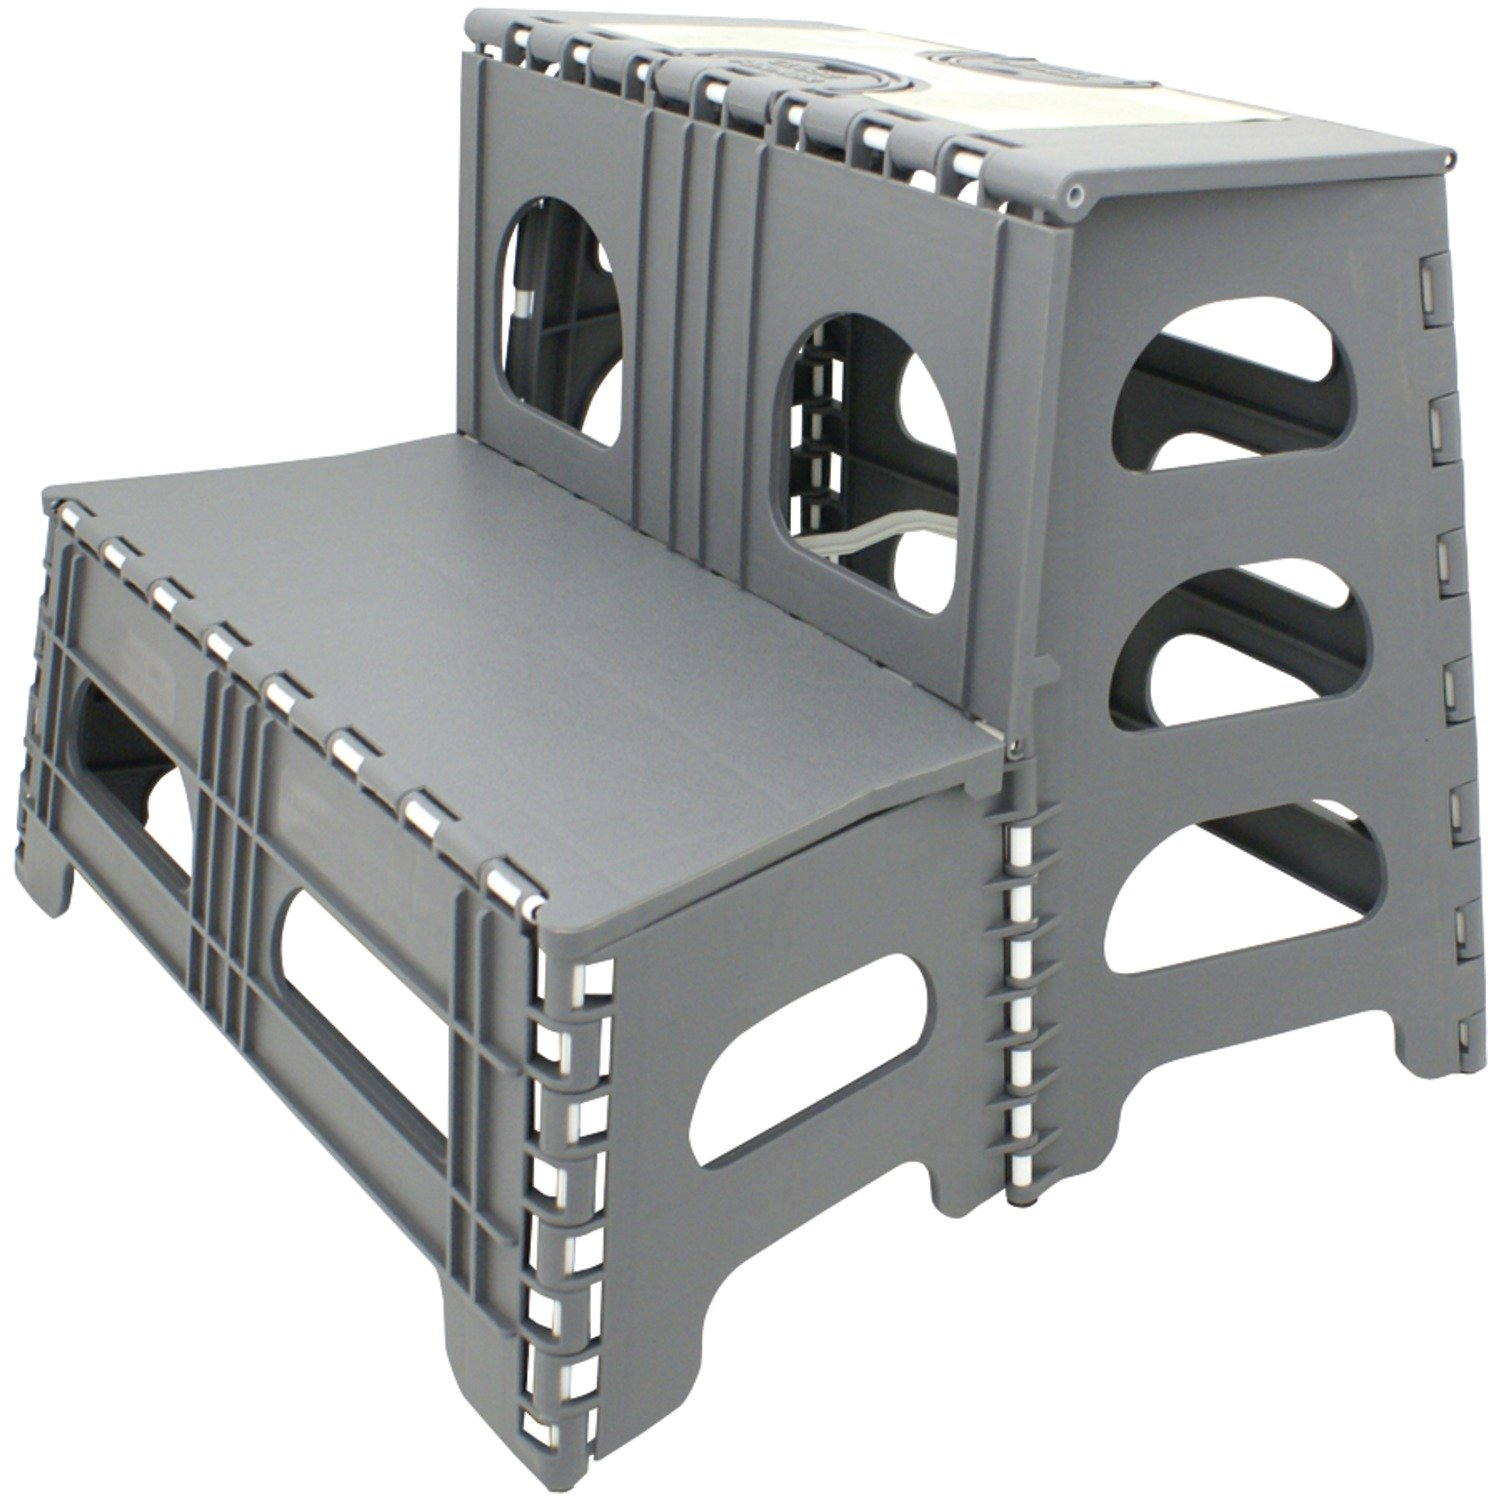 Double Step Stool Stair Rv Camper Motorhome Garage